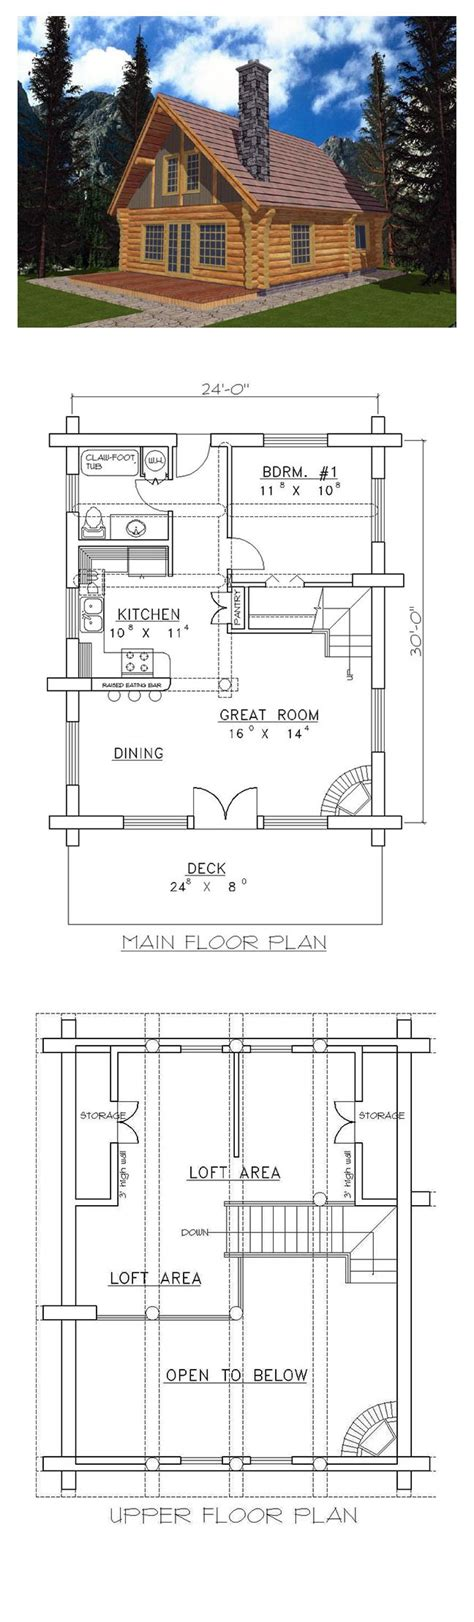 one bedroom log cabin plans best 25 1 bedroom house plans ideas on guest cottage plans small home plans and